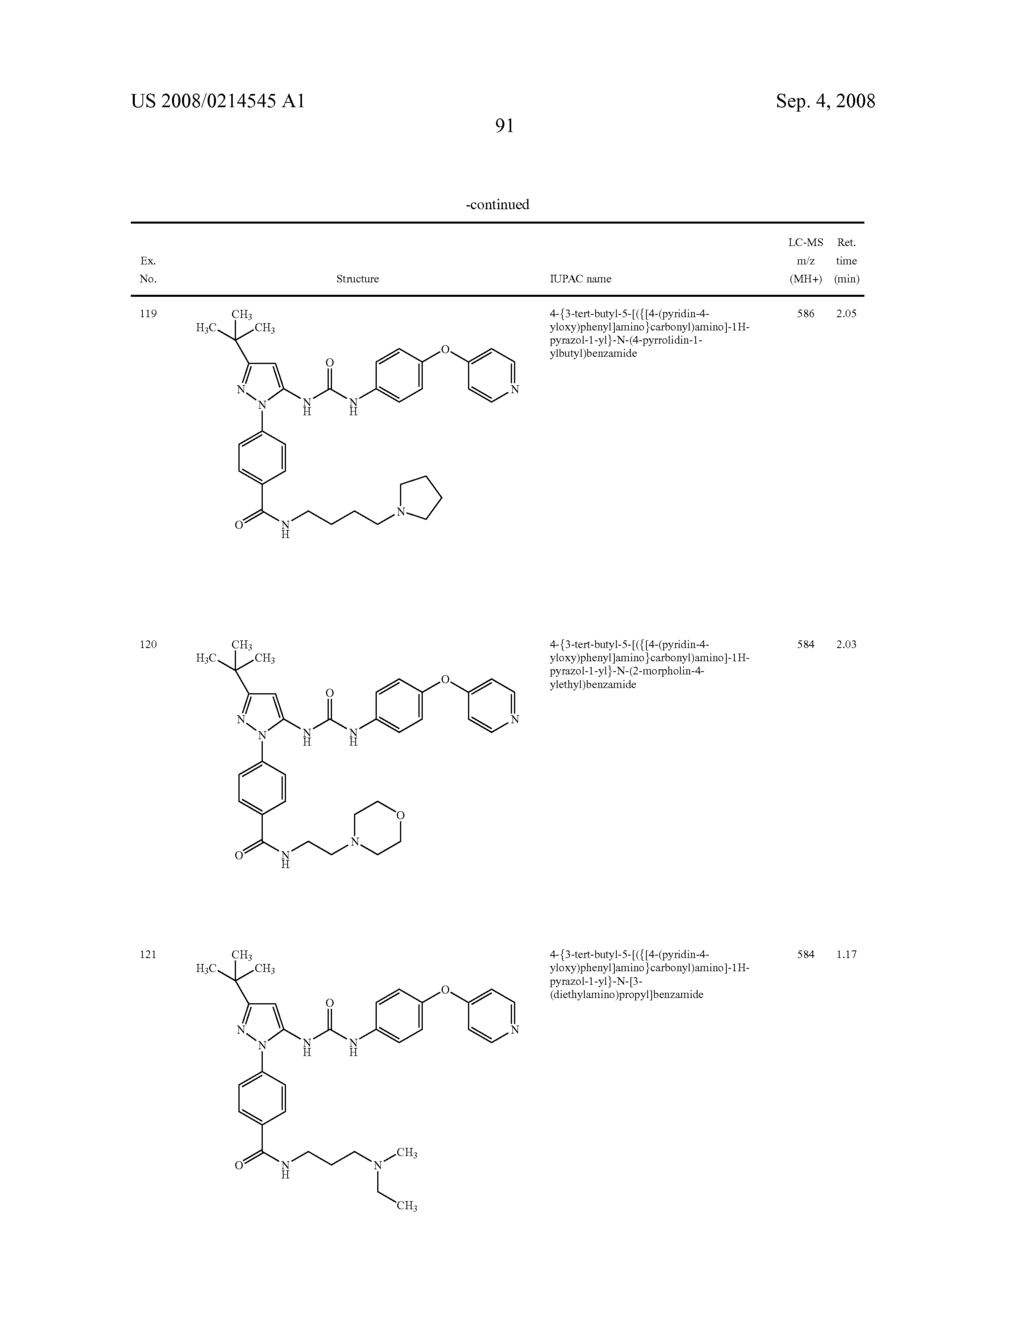 Substituted Pyrazolyl Urea Derivatives Useful in the Treatment of Cancer - diagram, schematic, and image 92